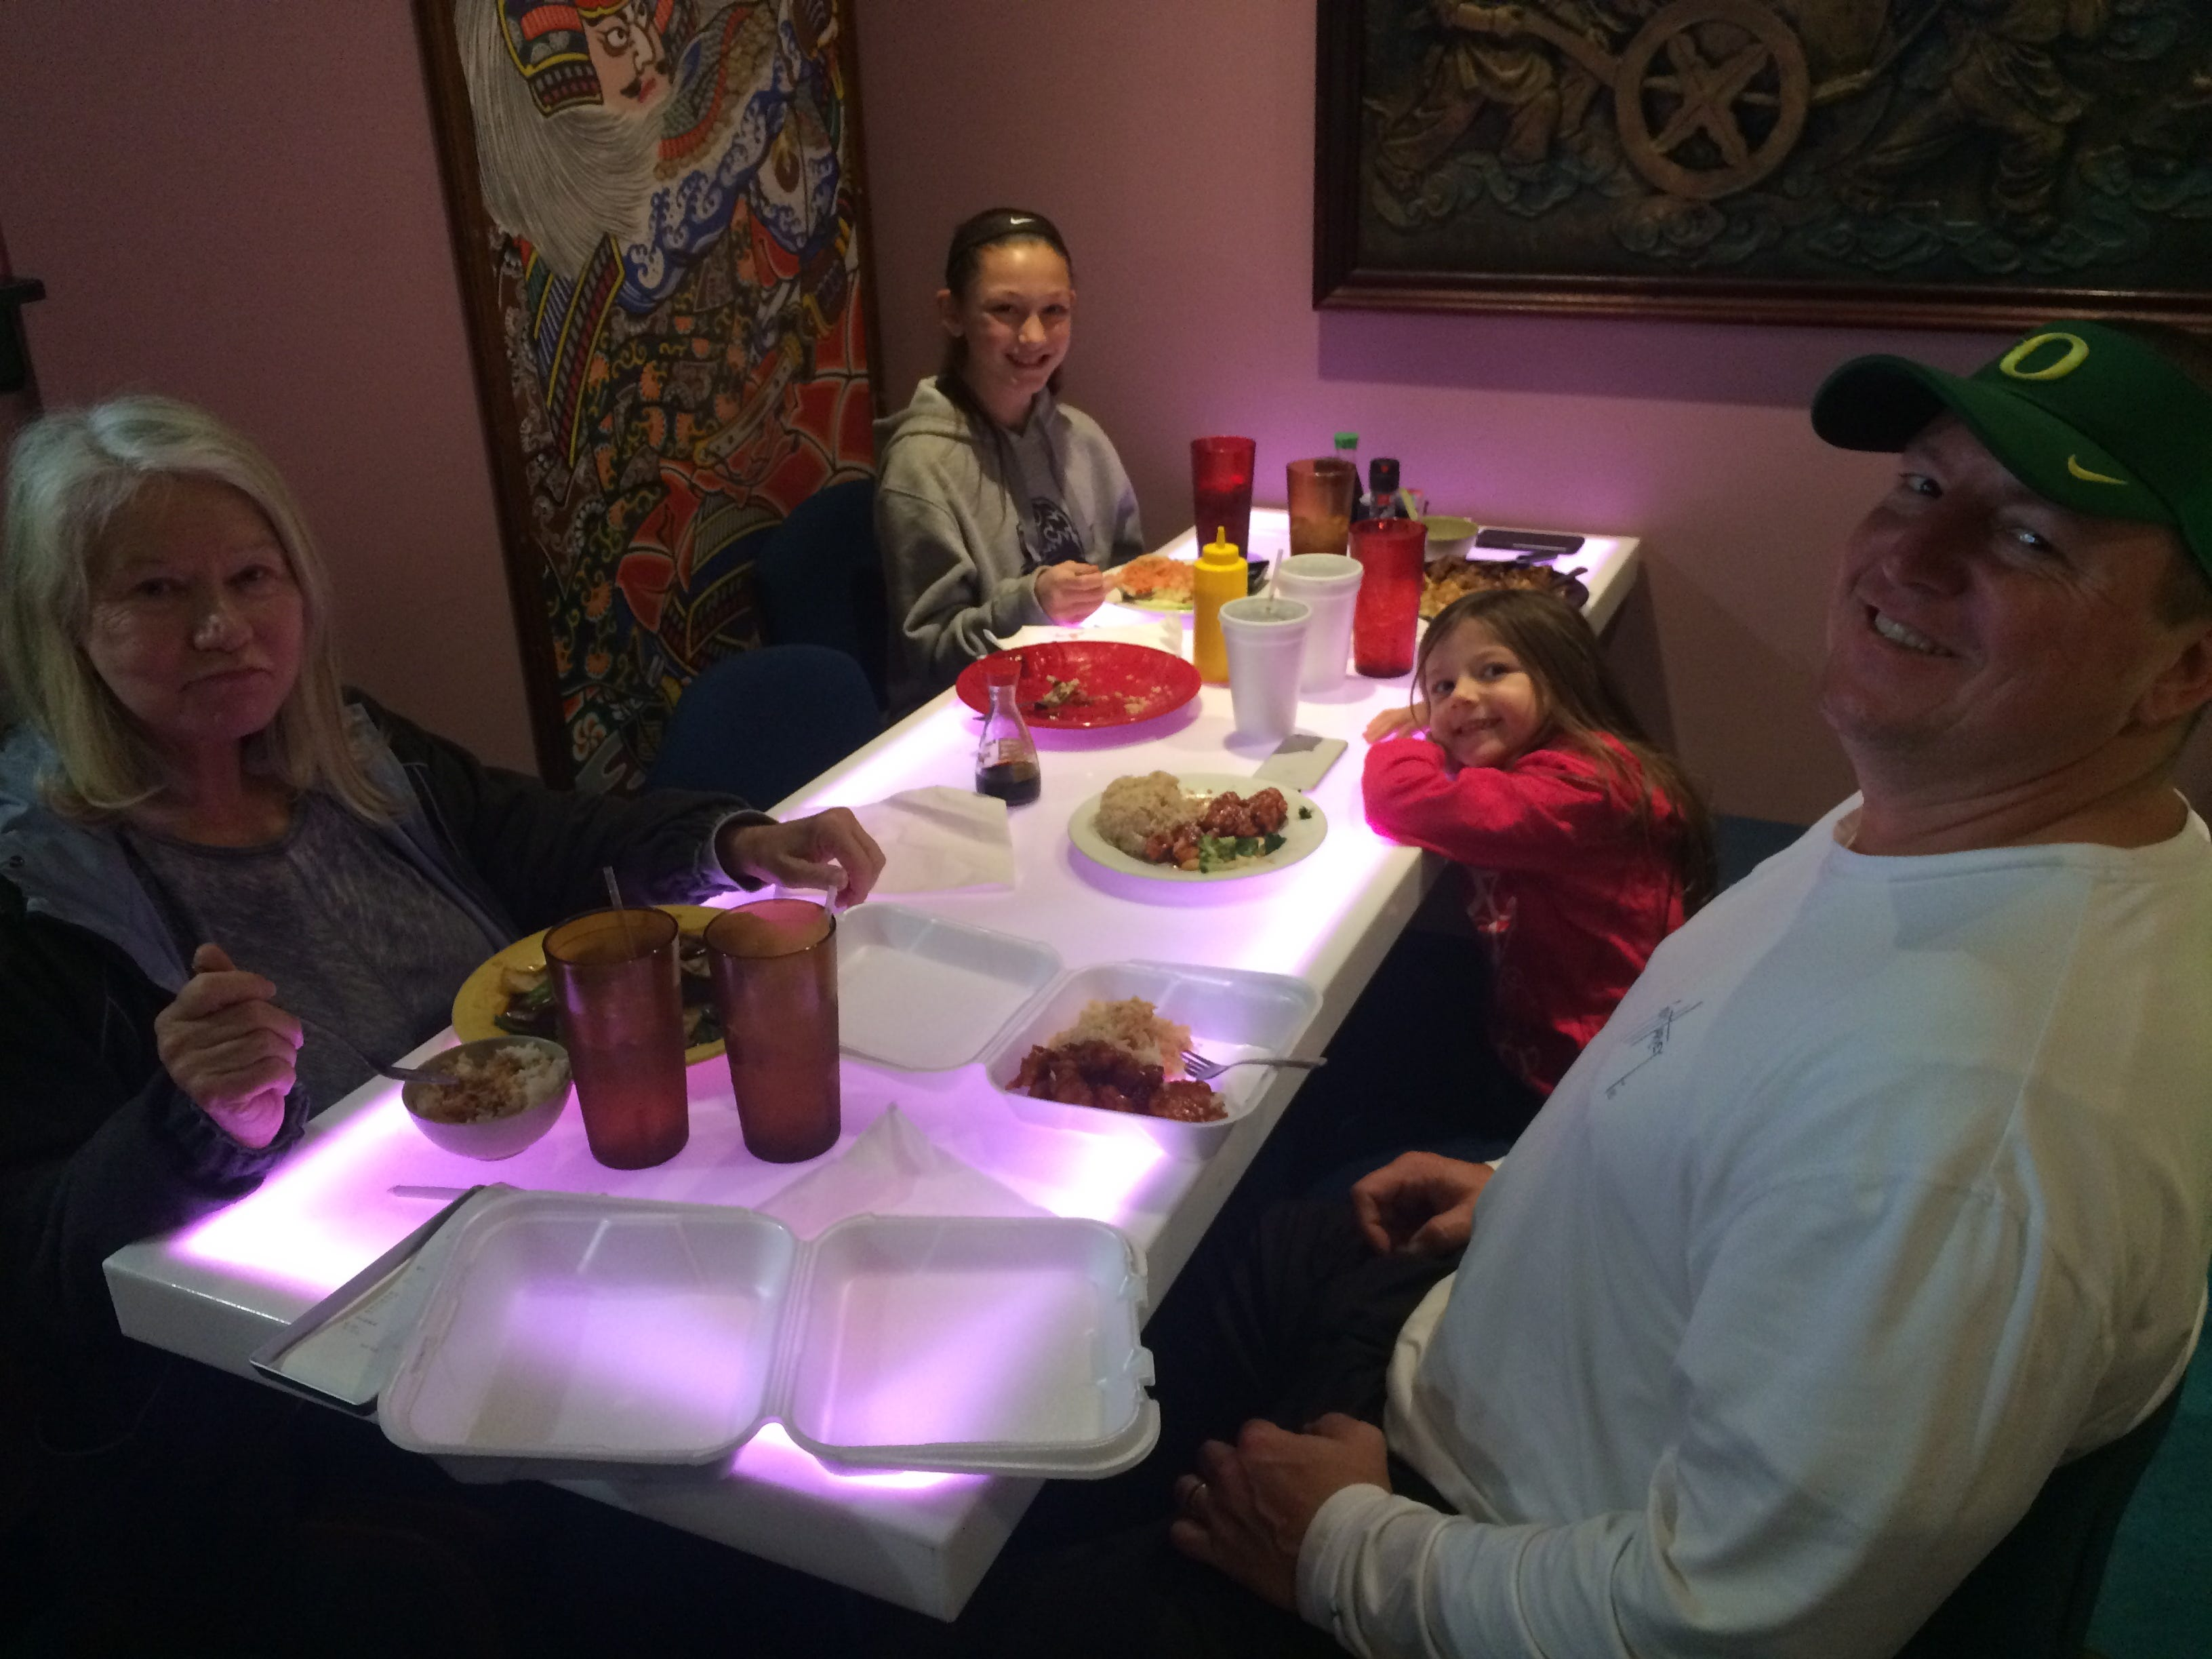 Powell High football coach Matt Lowe enjoys a meal at the Asia Café with his family: Sue Kitts, Lizzi Lowe and Linni Lowe.